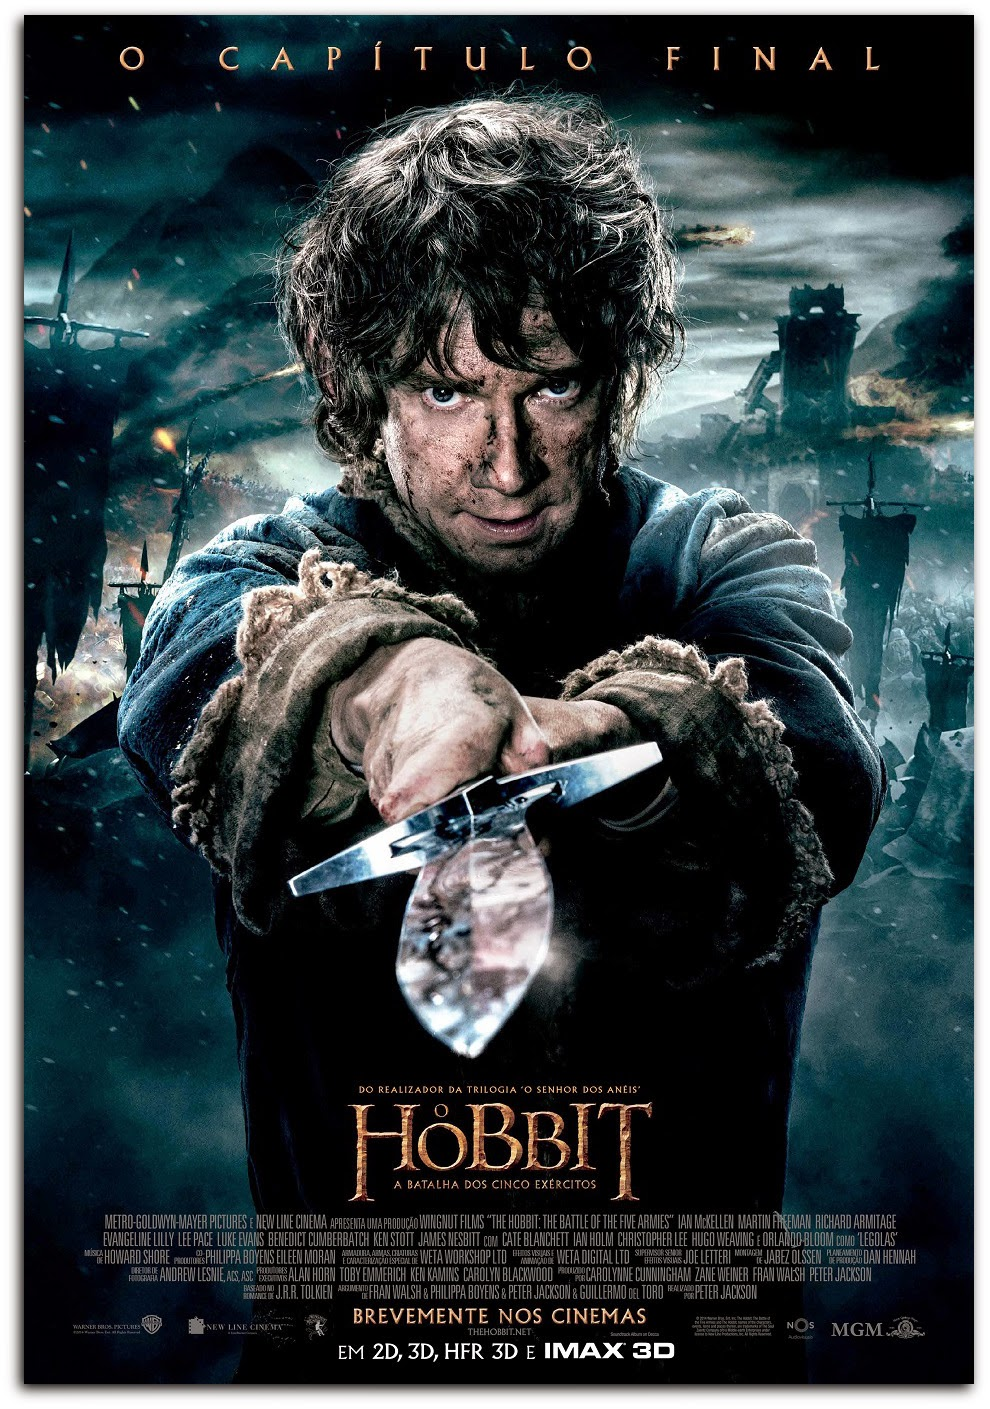 The Hobbit: The Battle of the Five Armies [O Hobbit: A Batalha dos Cinco Exércitos]